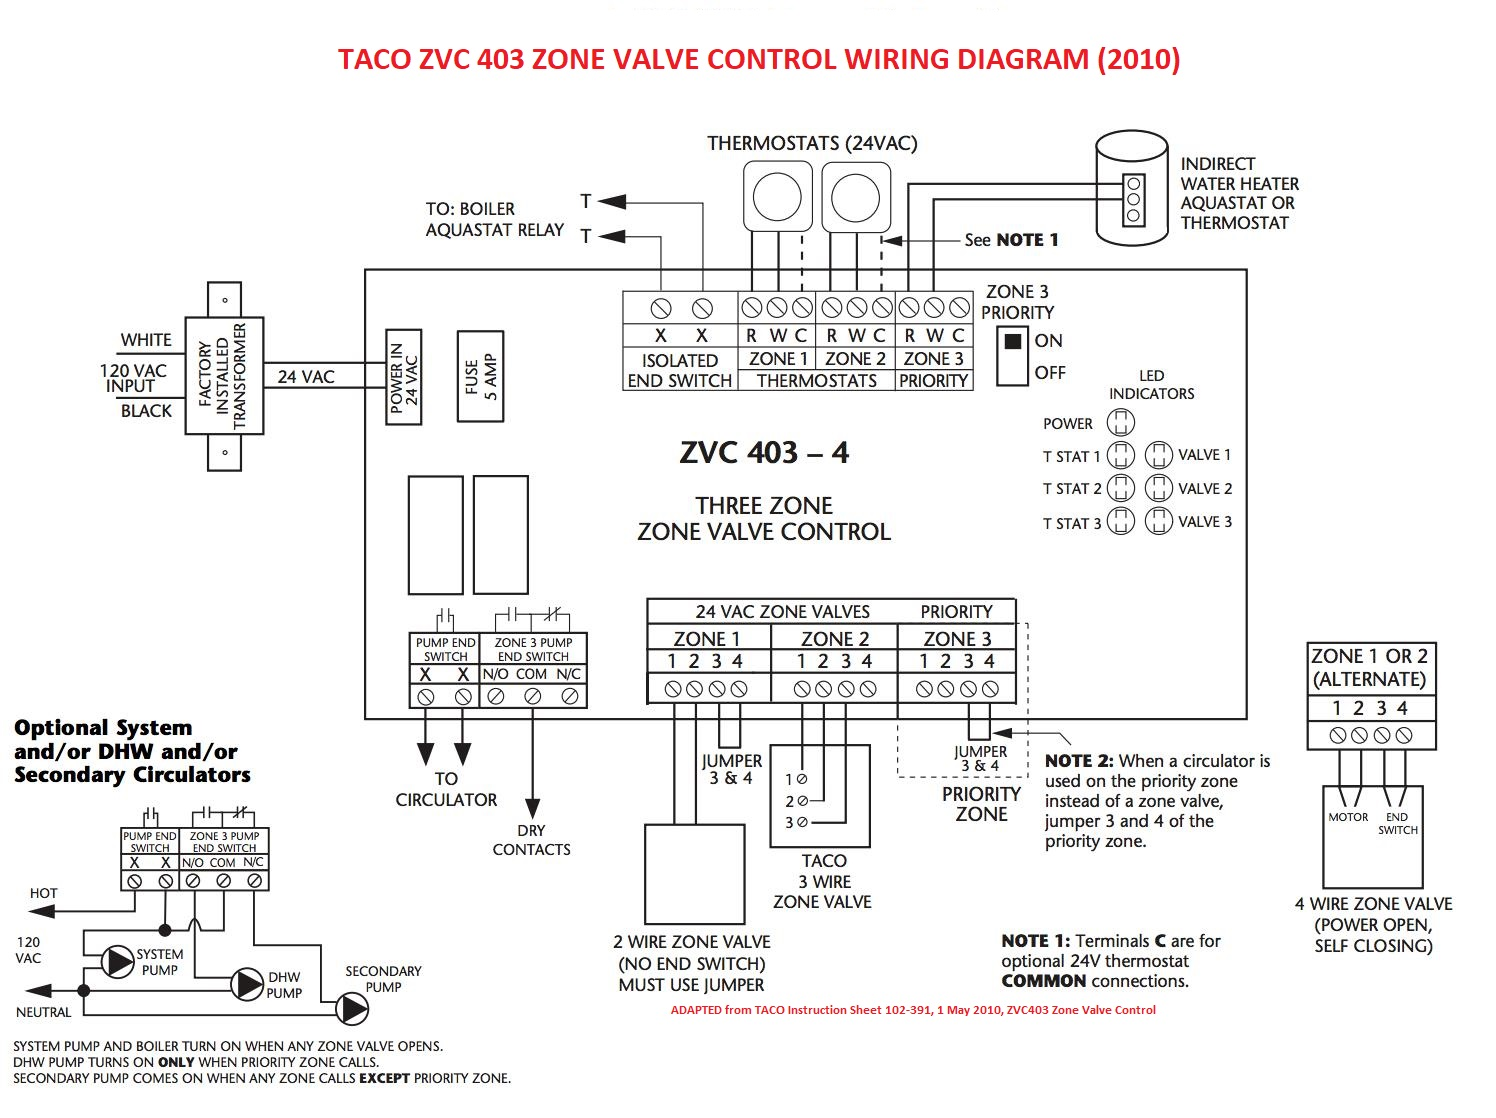 zone valve wiring installation & instructions guide to heating 120 Volt Relay Wiring Diagram taci zvc493 wiring diagram click to enlarge at inspectapedia com